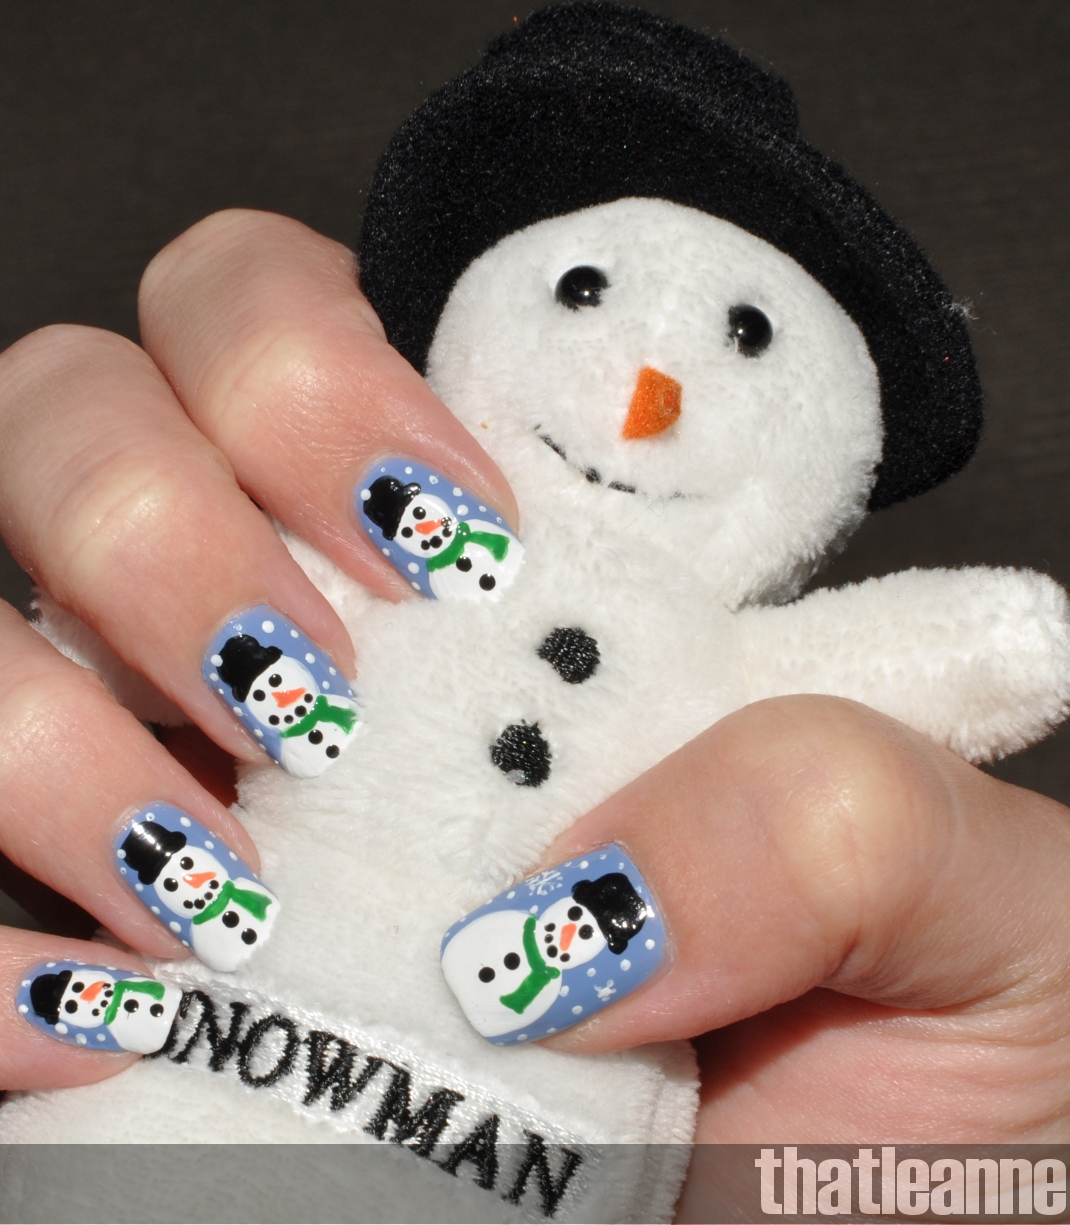 Thatleanne snowman nail art how to for a road trip so i thought id post my latest holiday nails snow men oh and share a picture of my latest pandora bracelet i got a snowman charm d prinsesfo Images